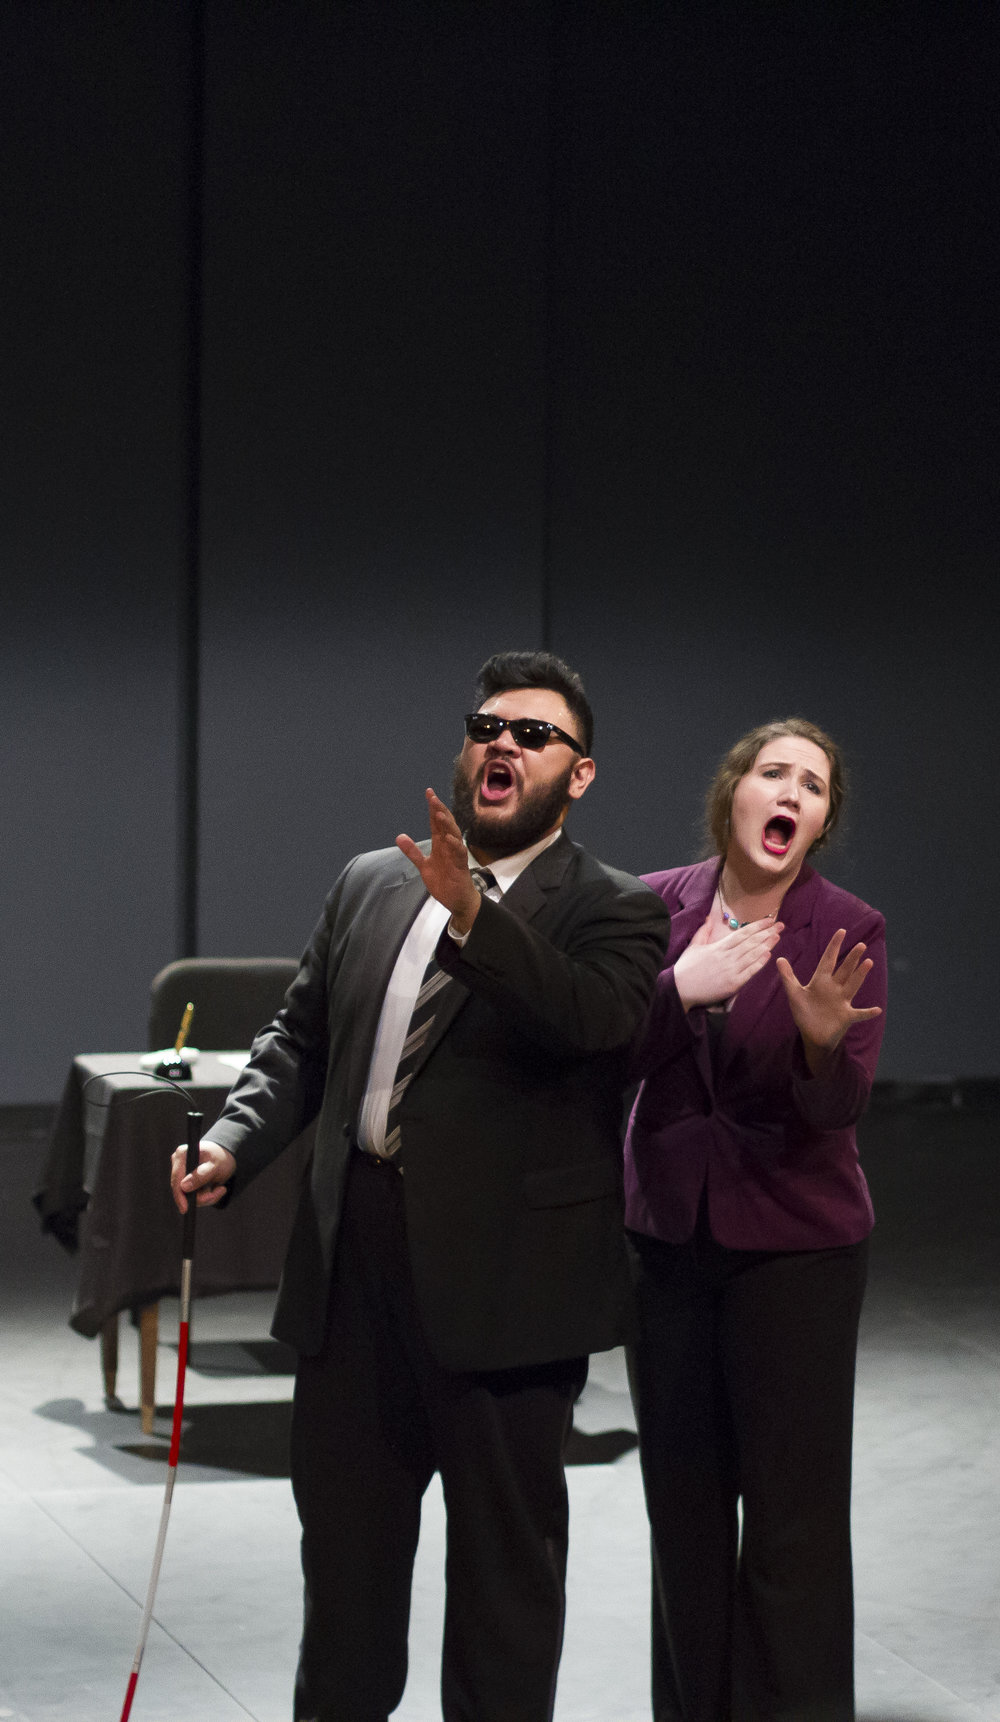 Mike Lala Joshua Getman Oedipus in the District Juilliard 2018 4.jpg